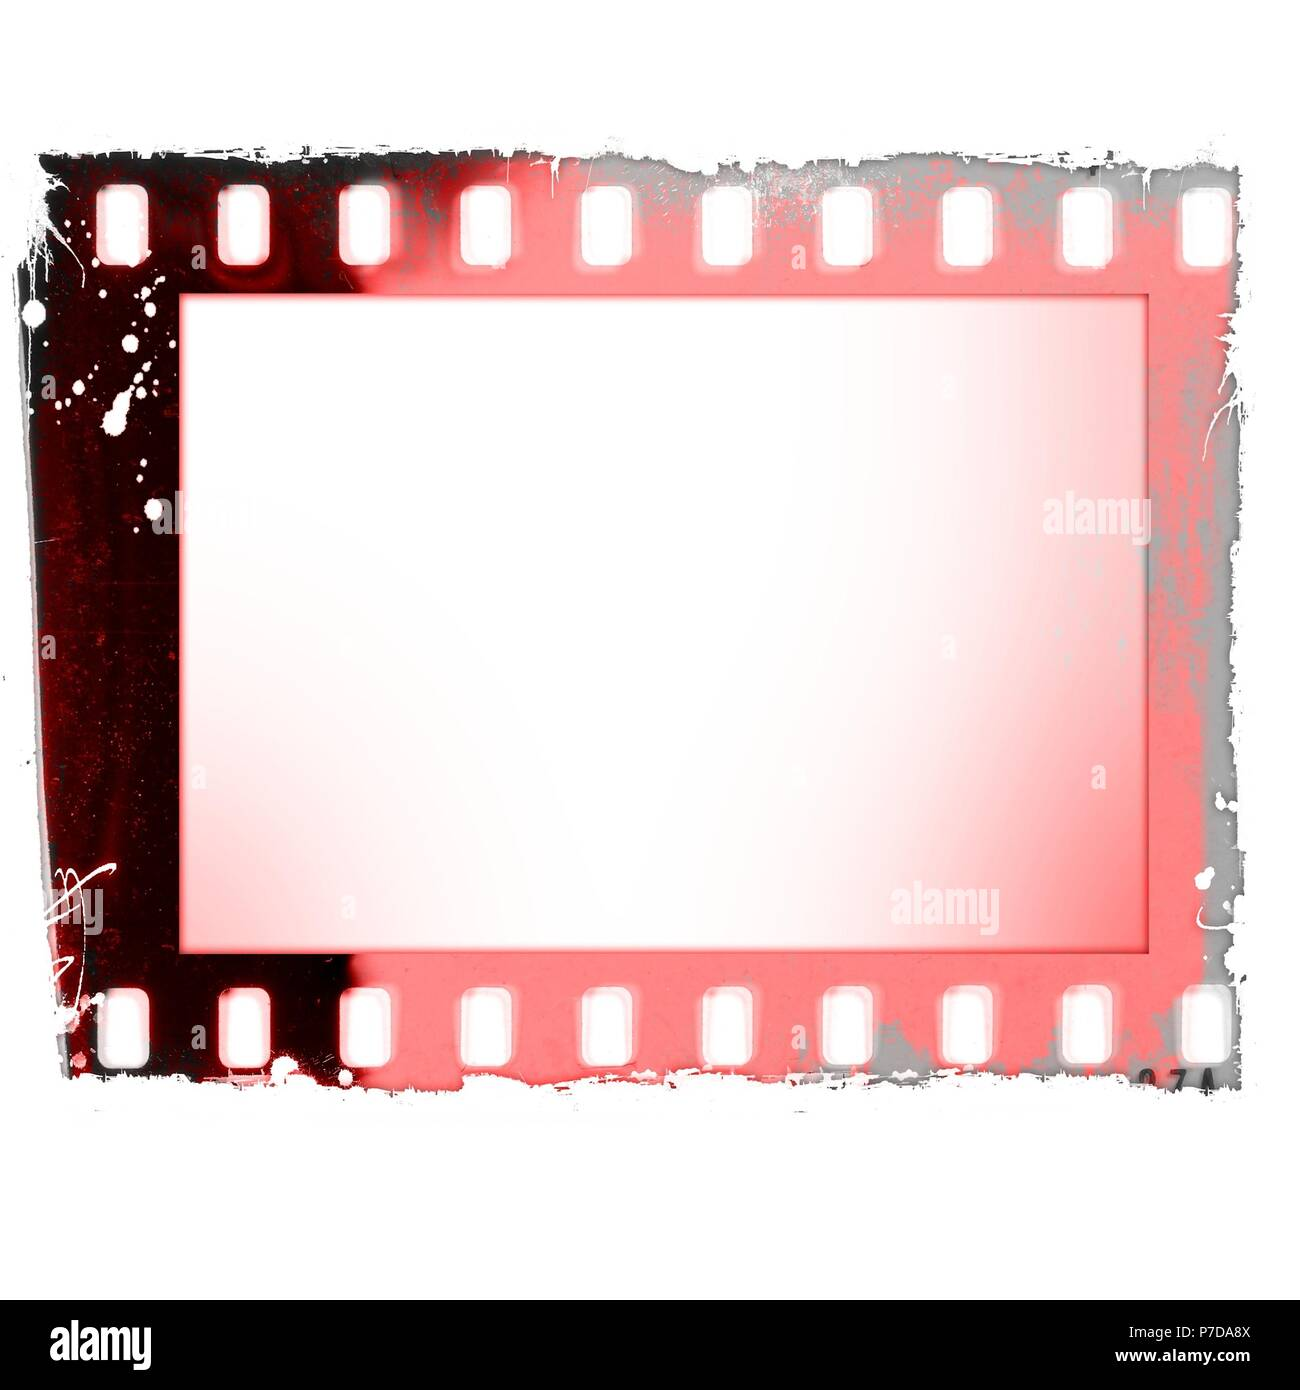 Grunge red film strip frame isolated on white Stock Photo: 211120474 ...